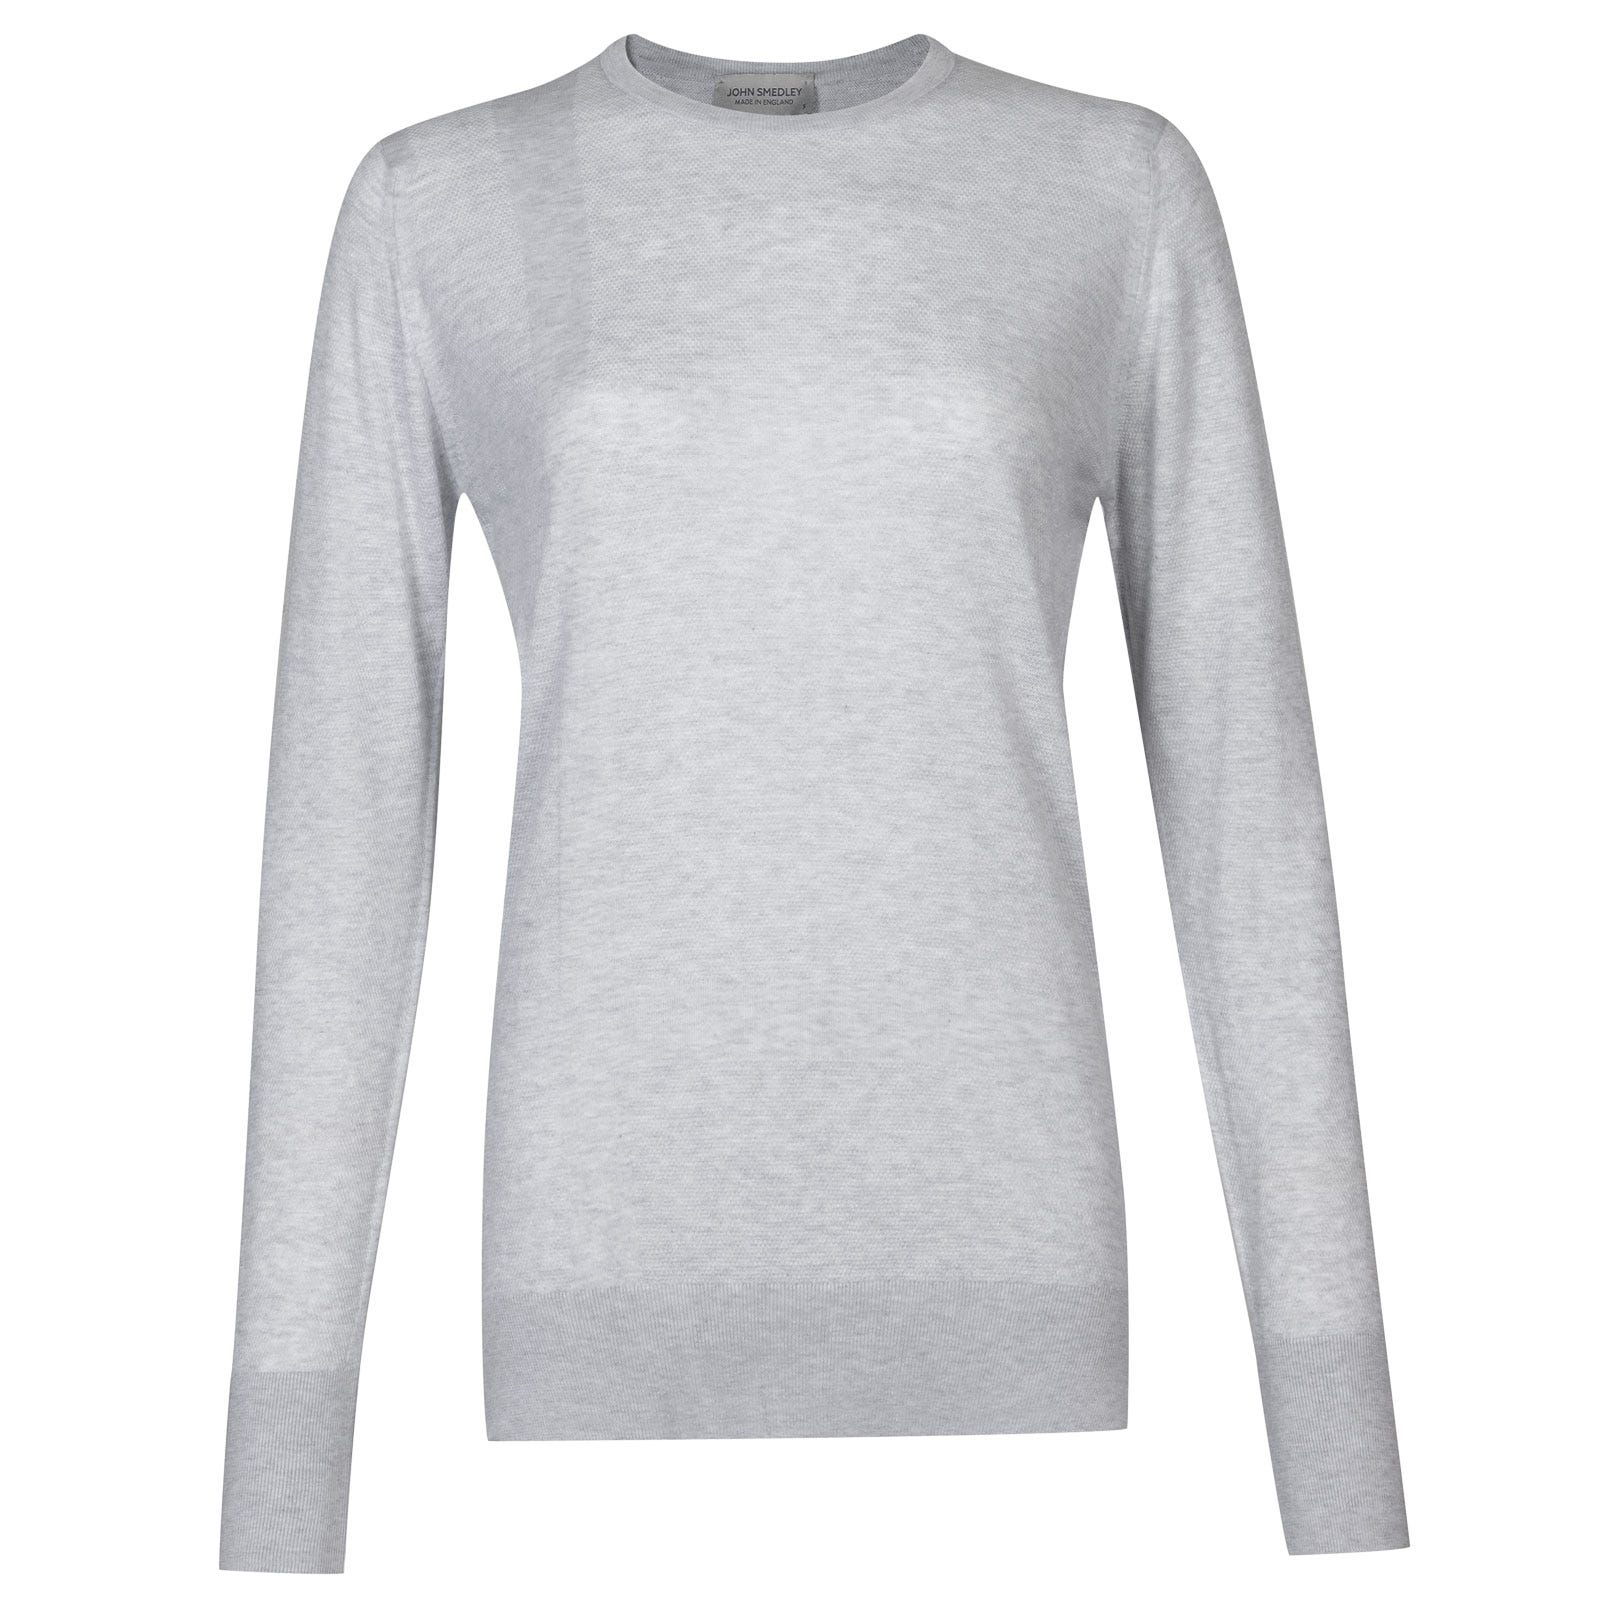 Lawlor-feather-grey-L